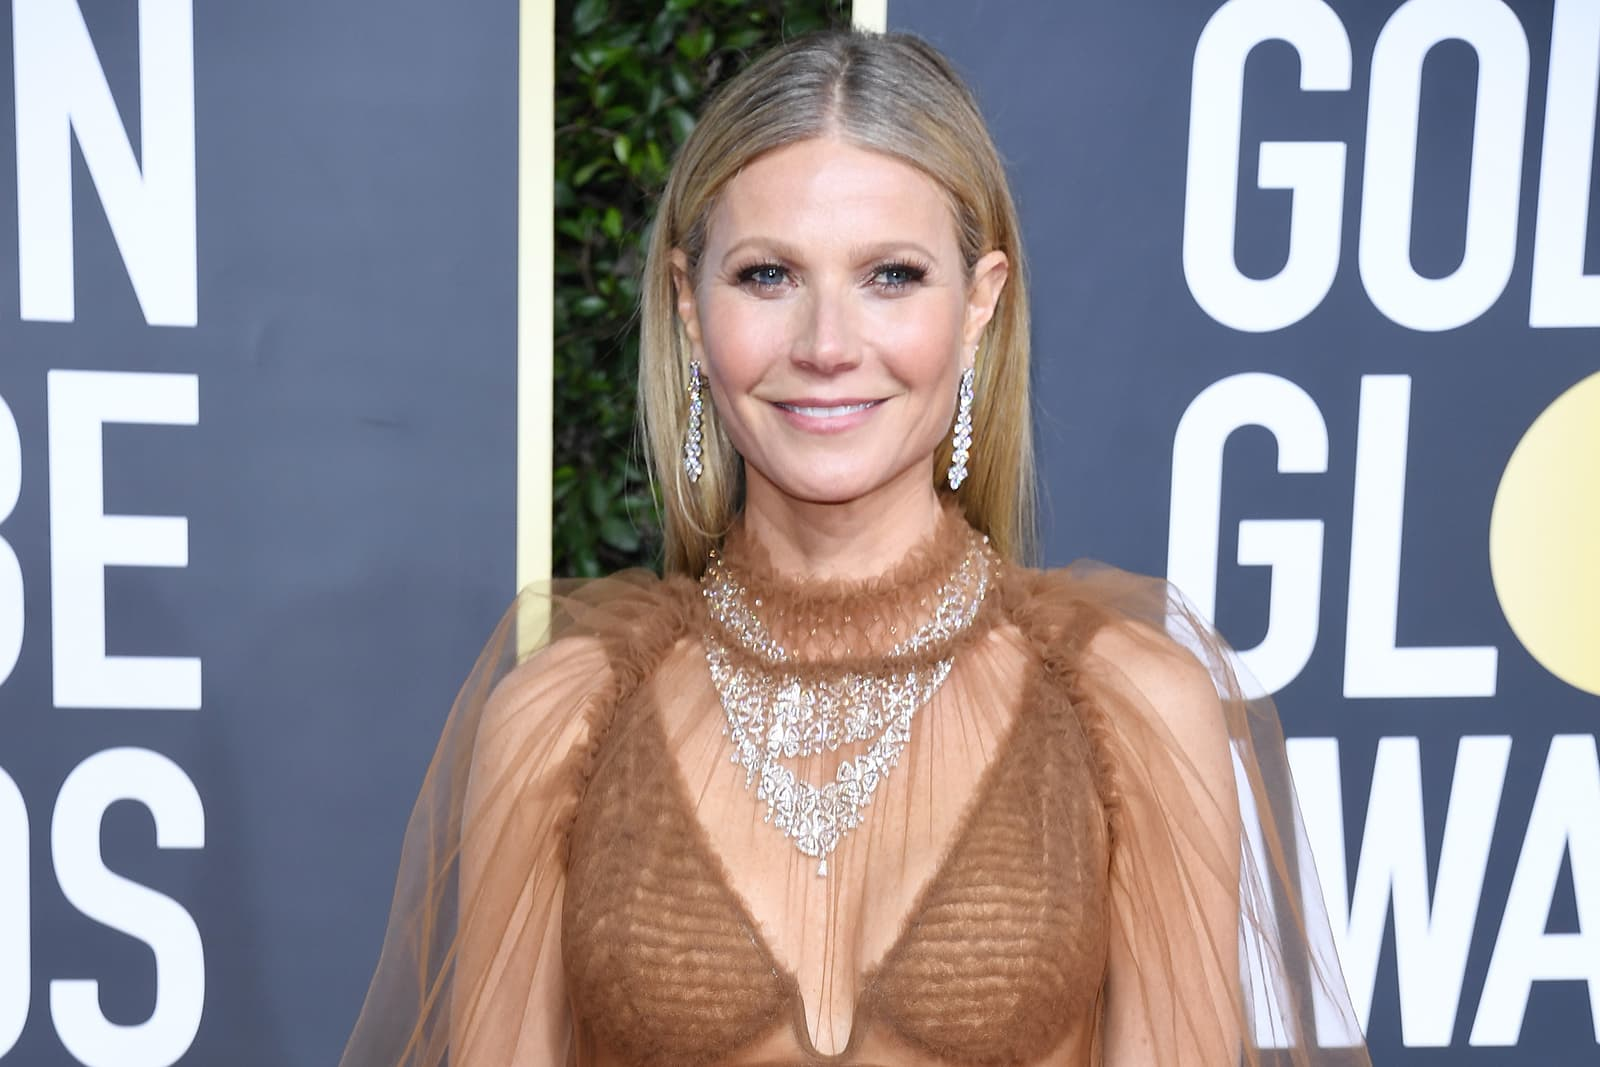 Gwyneth Paltrow wearing two Bulgari Fiorever collection necklaces, High Jewellery earrings and rings totaling almost 100ct of diamonds